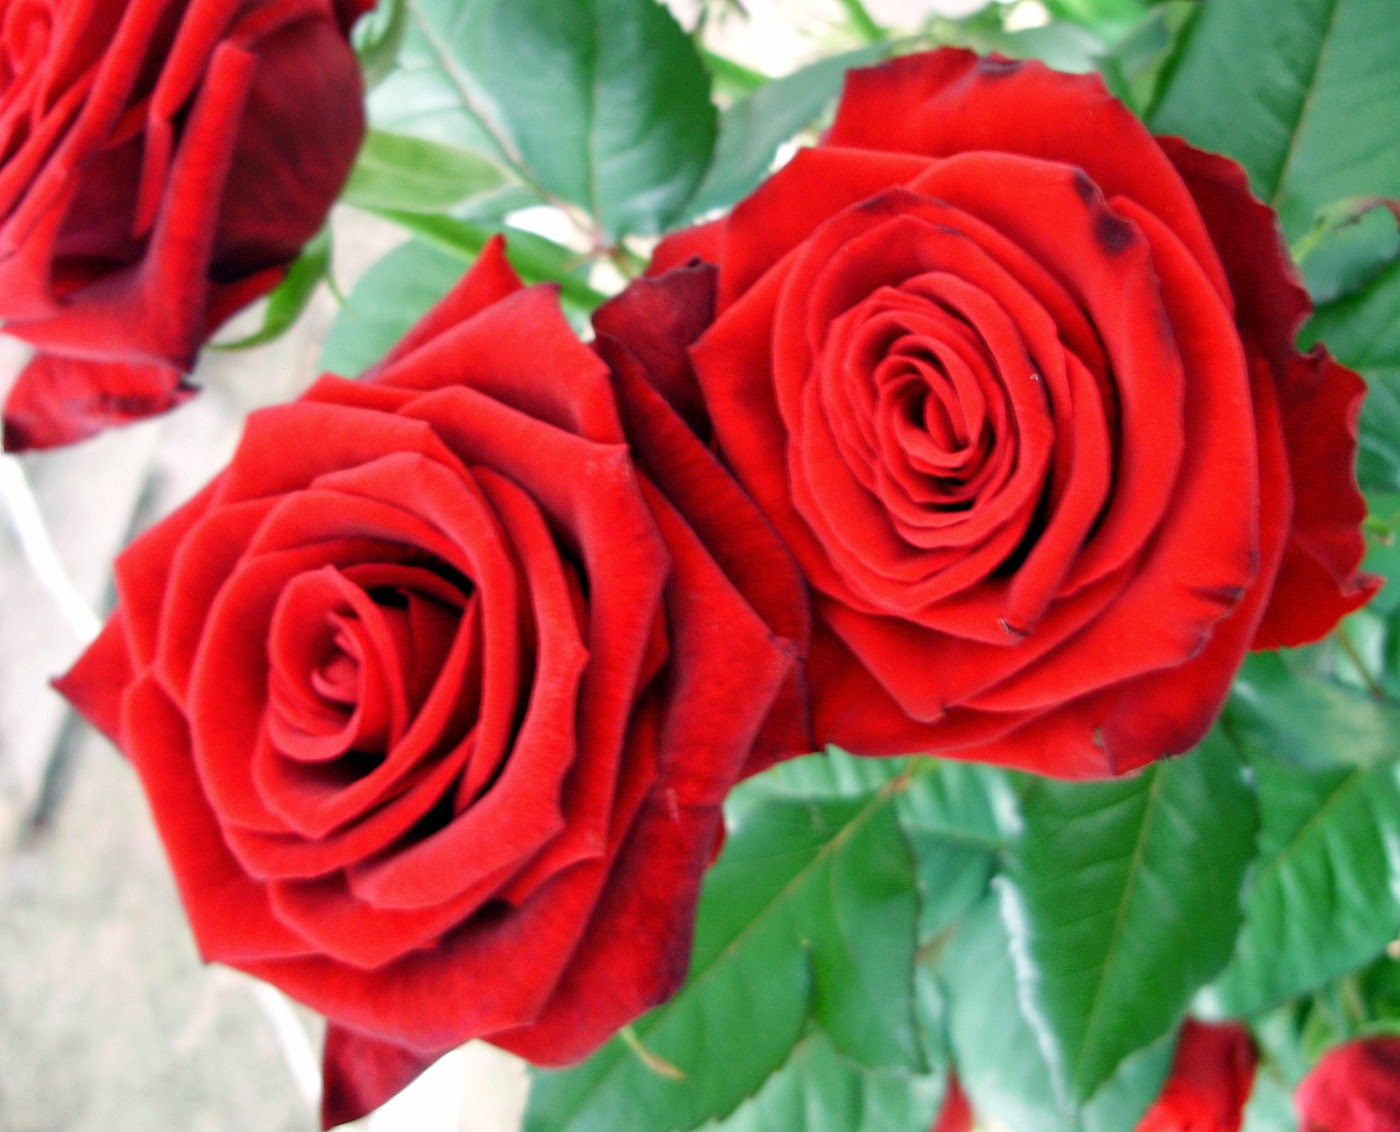 Red roses free photos for free download - Images of red roses hd ...